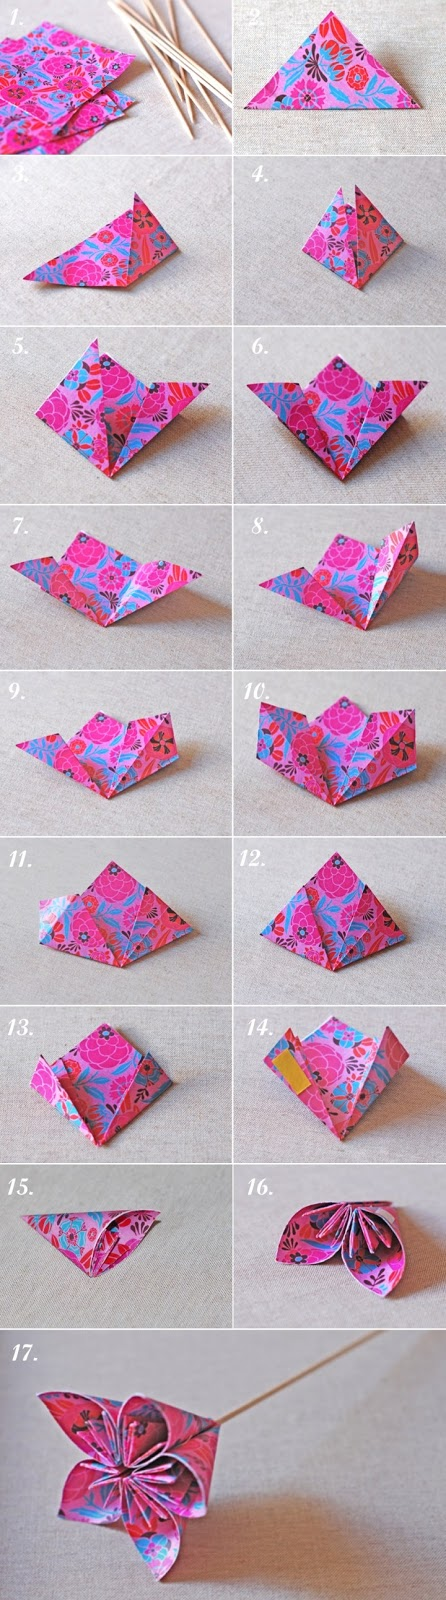 How to make a origami kusudama flower art craft ideas 1 cut paper making squares of 10 cm mightylinksfo